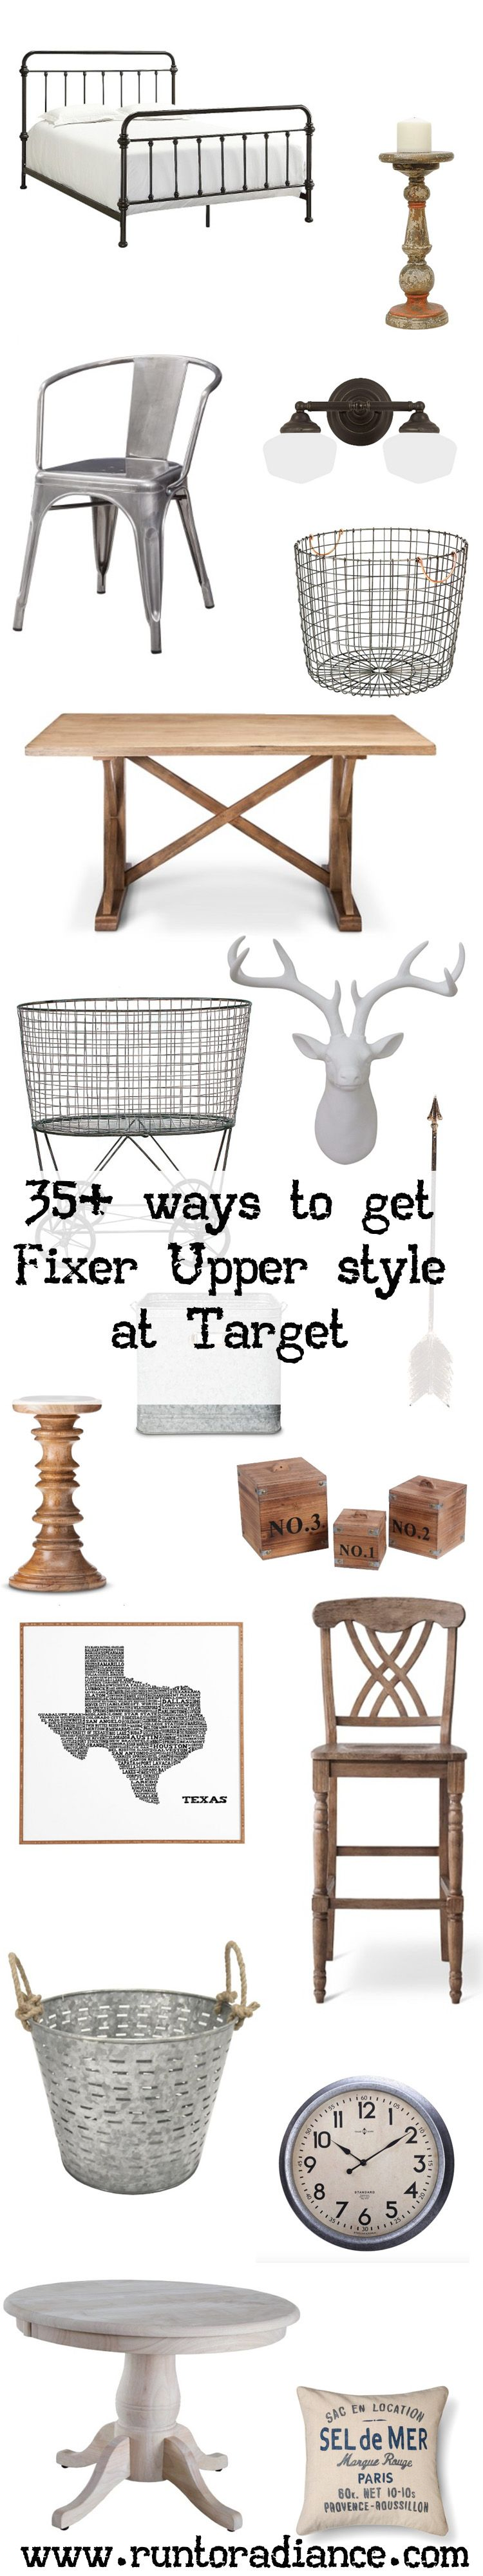 fixer upper style 35 target items that will get you the fixer upper look fixer upper target. Black Bedroom Furniture Sets. Home Design Ideas